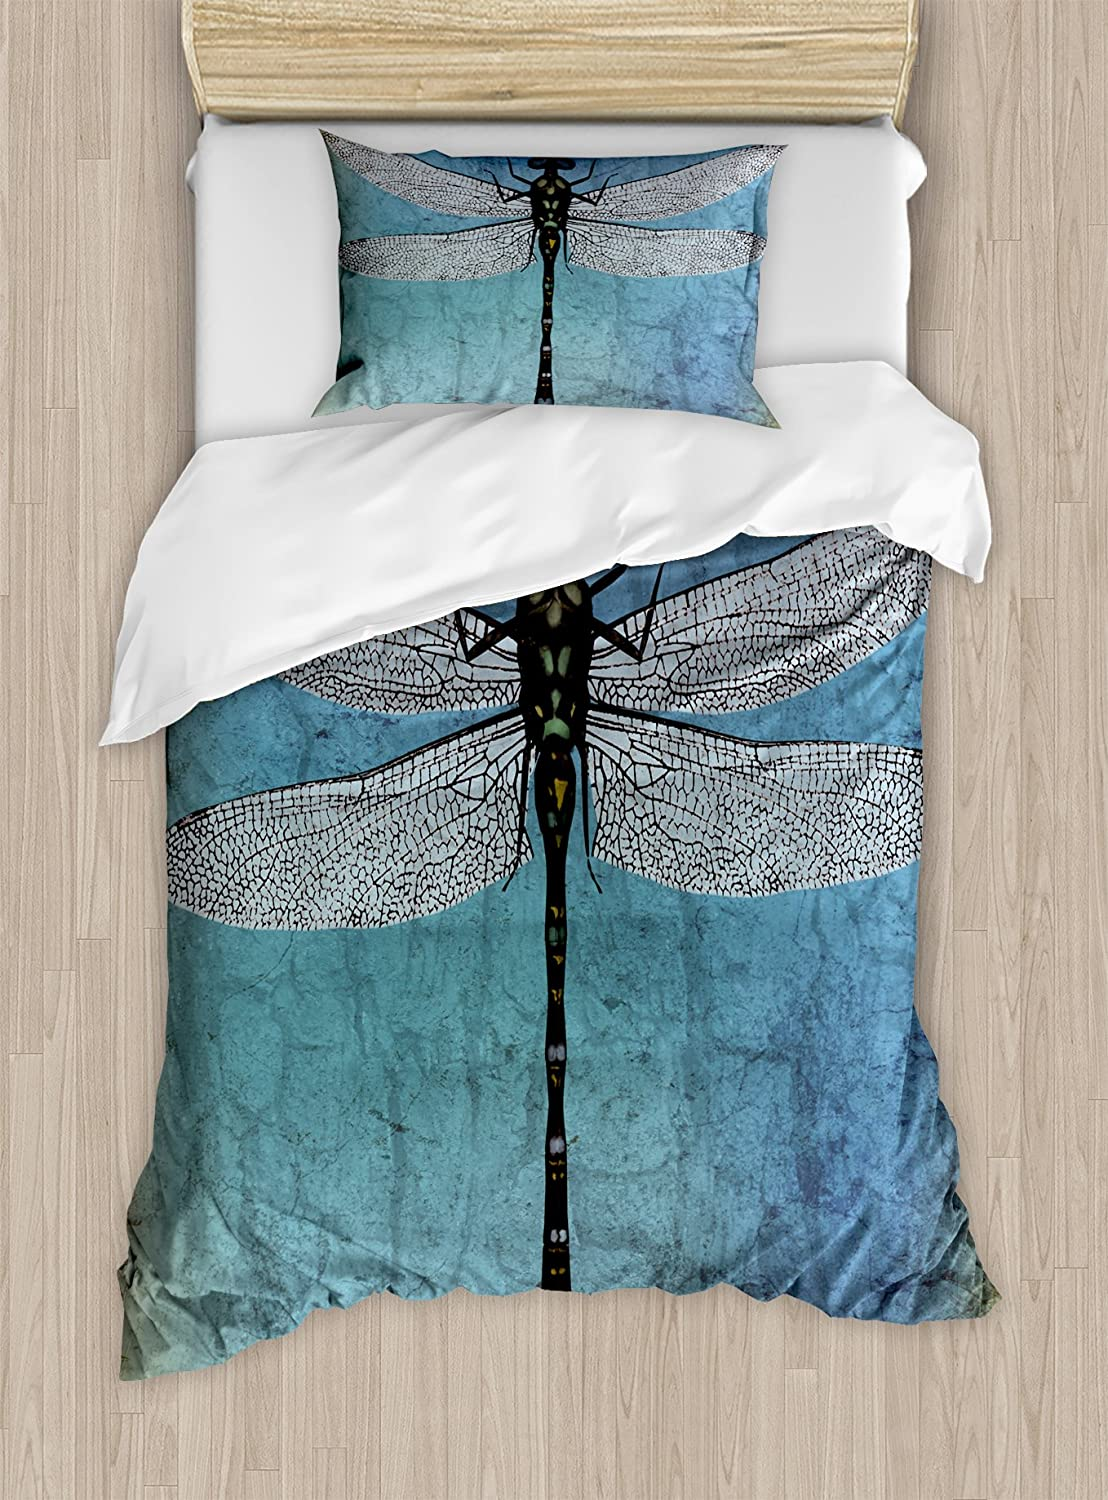 Duvet Covers Decorative 3 Piece Bedding Set With 2 Pillow Shams Ambesonne Dragonfly Duvet Cover Set King Size Grunge Vintage Old Backdrop And Dragonfly Bug Ombre Image Dark Blue Turquoise And Black